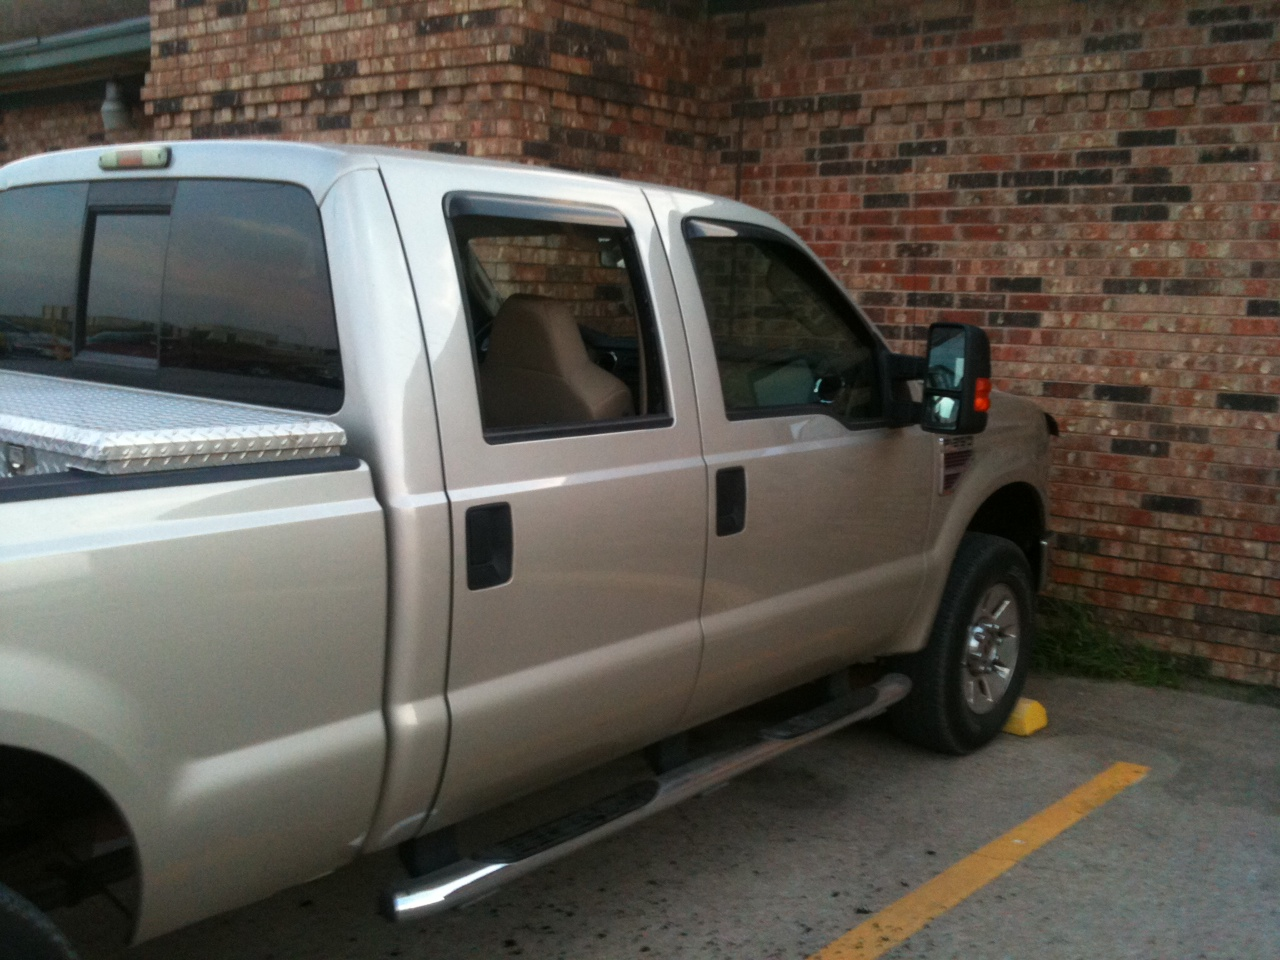 F 250 4 Door Crew Cab Windshield Replacement Prices Local Auto 1970 Ford 2008 Glass Rear Passenger Side